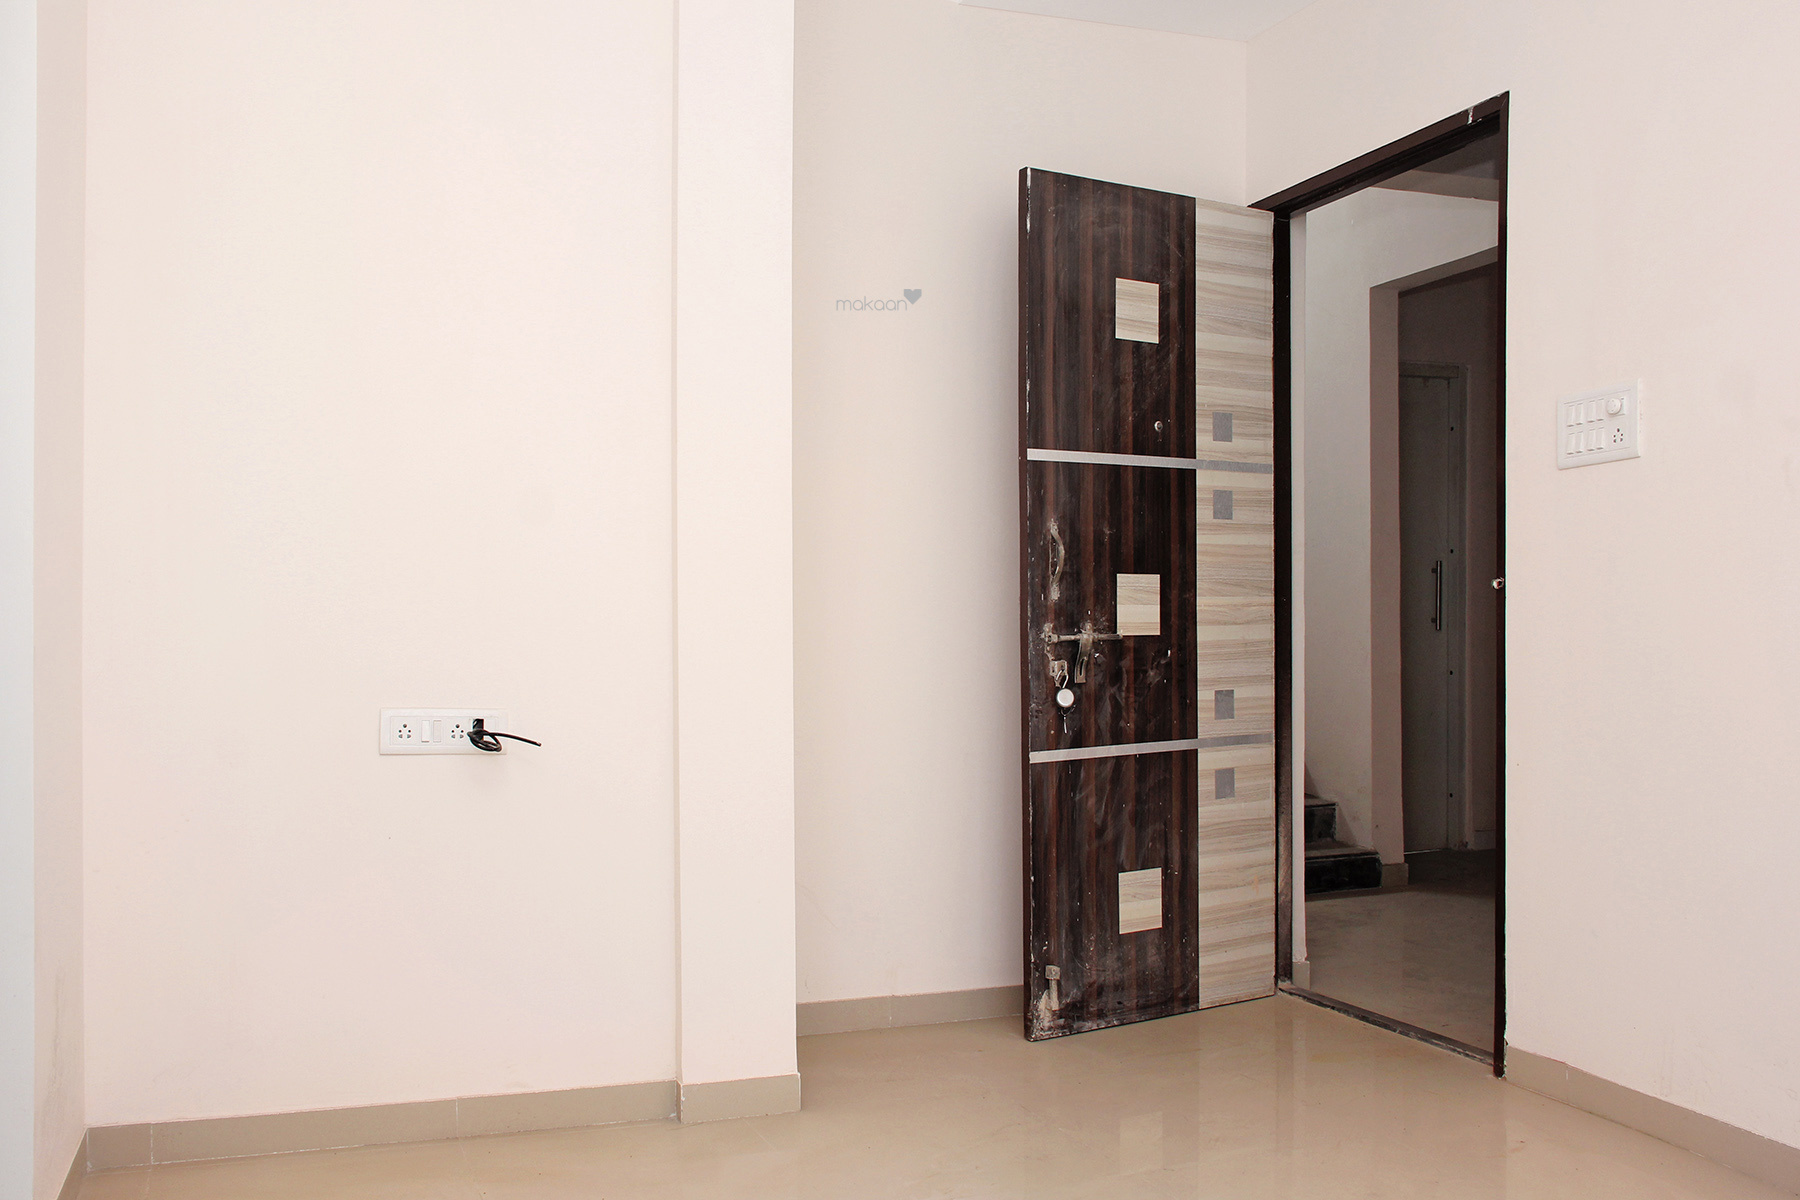 557 sq ft 1BHK 1BHK+1T (557 sq ft) Property By Proptiger In Madhuban, Thergaon